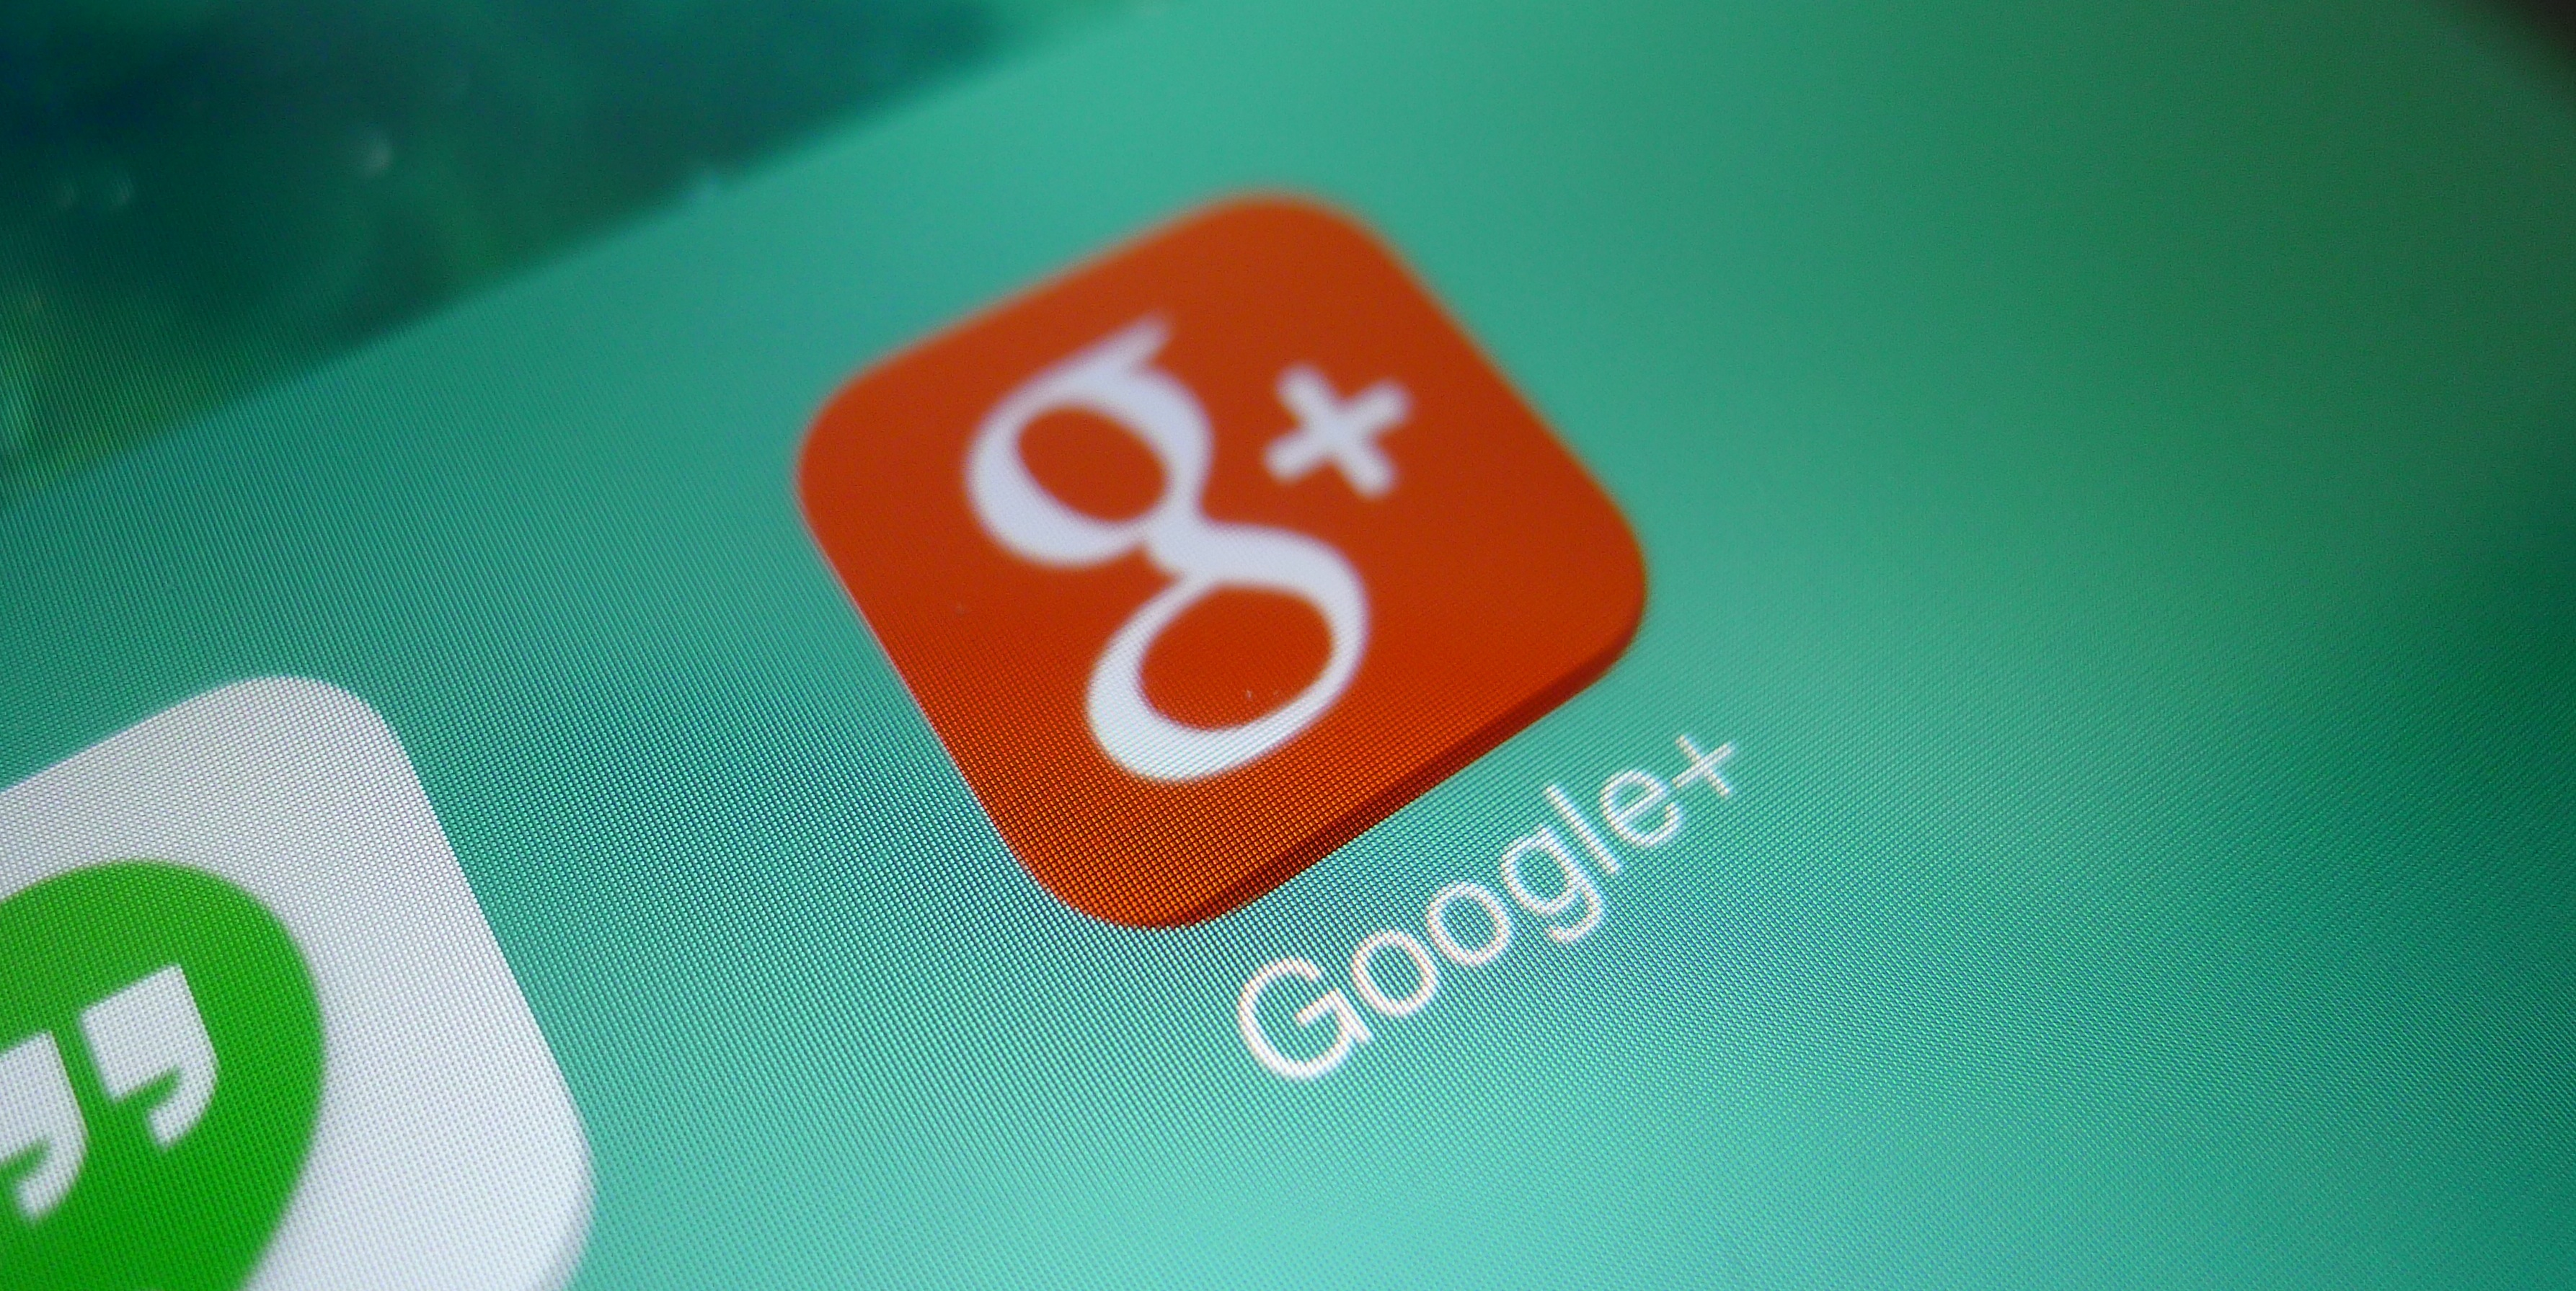 Google+ is dead because of a security flaw the company didn't want to fix